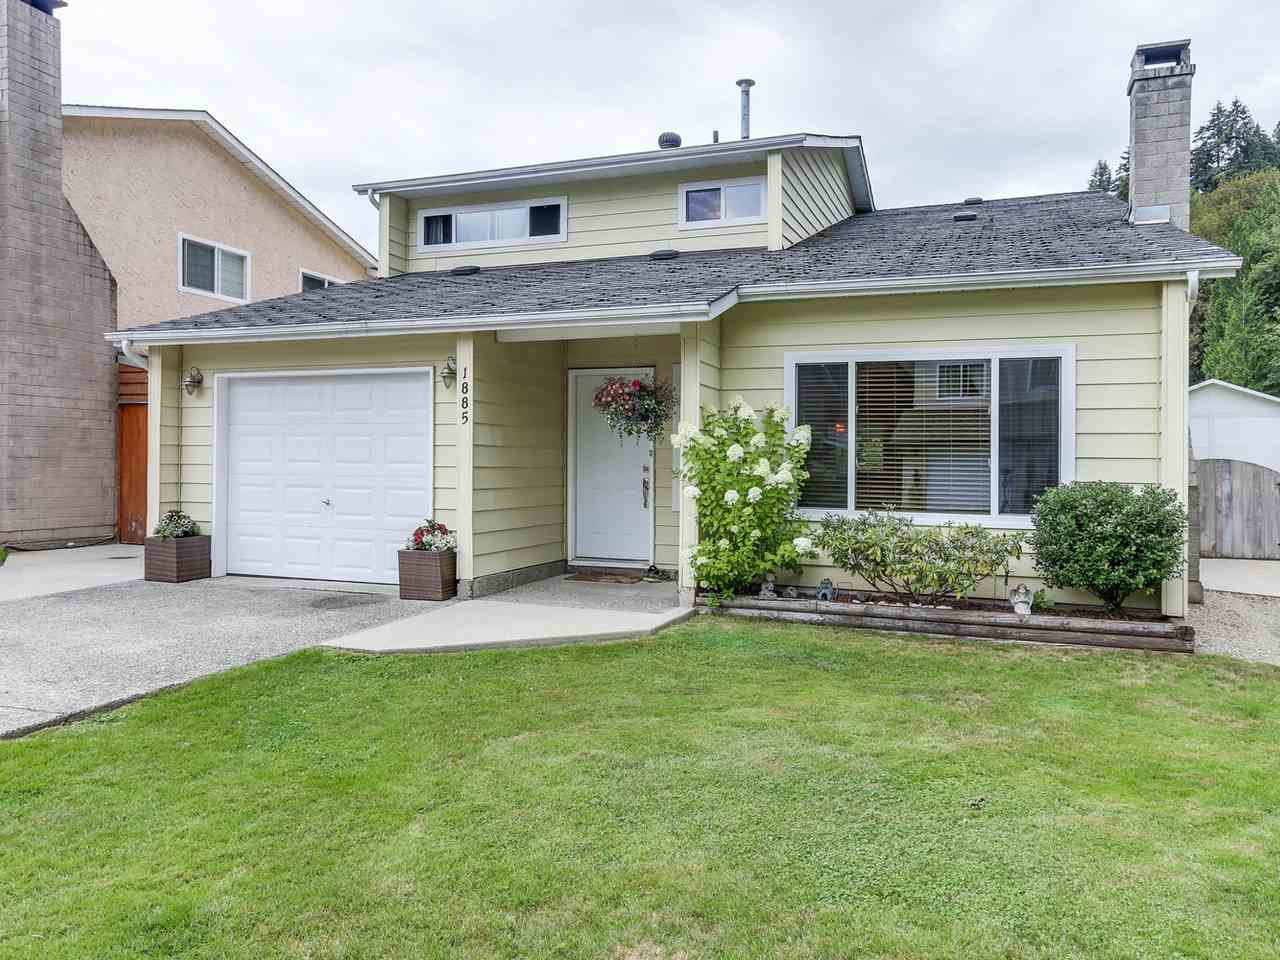 Main Photo: 1885 BLUFF Way in Coquitlam: River Springs House for sale : MLS®# R2094392